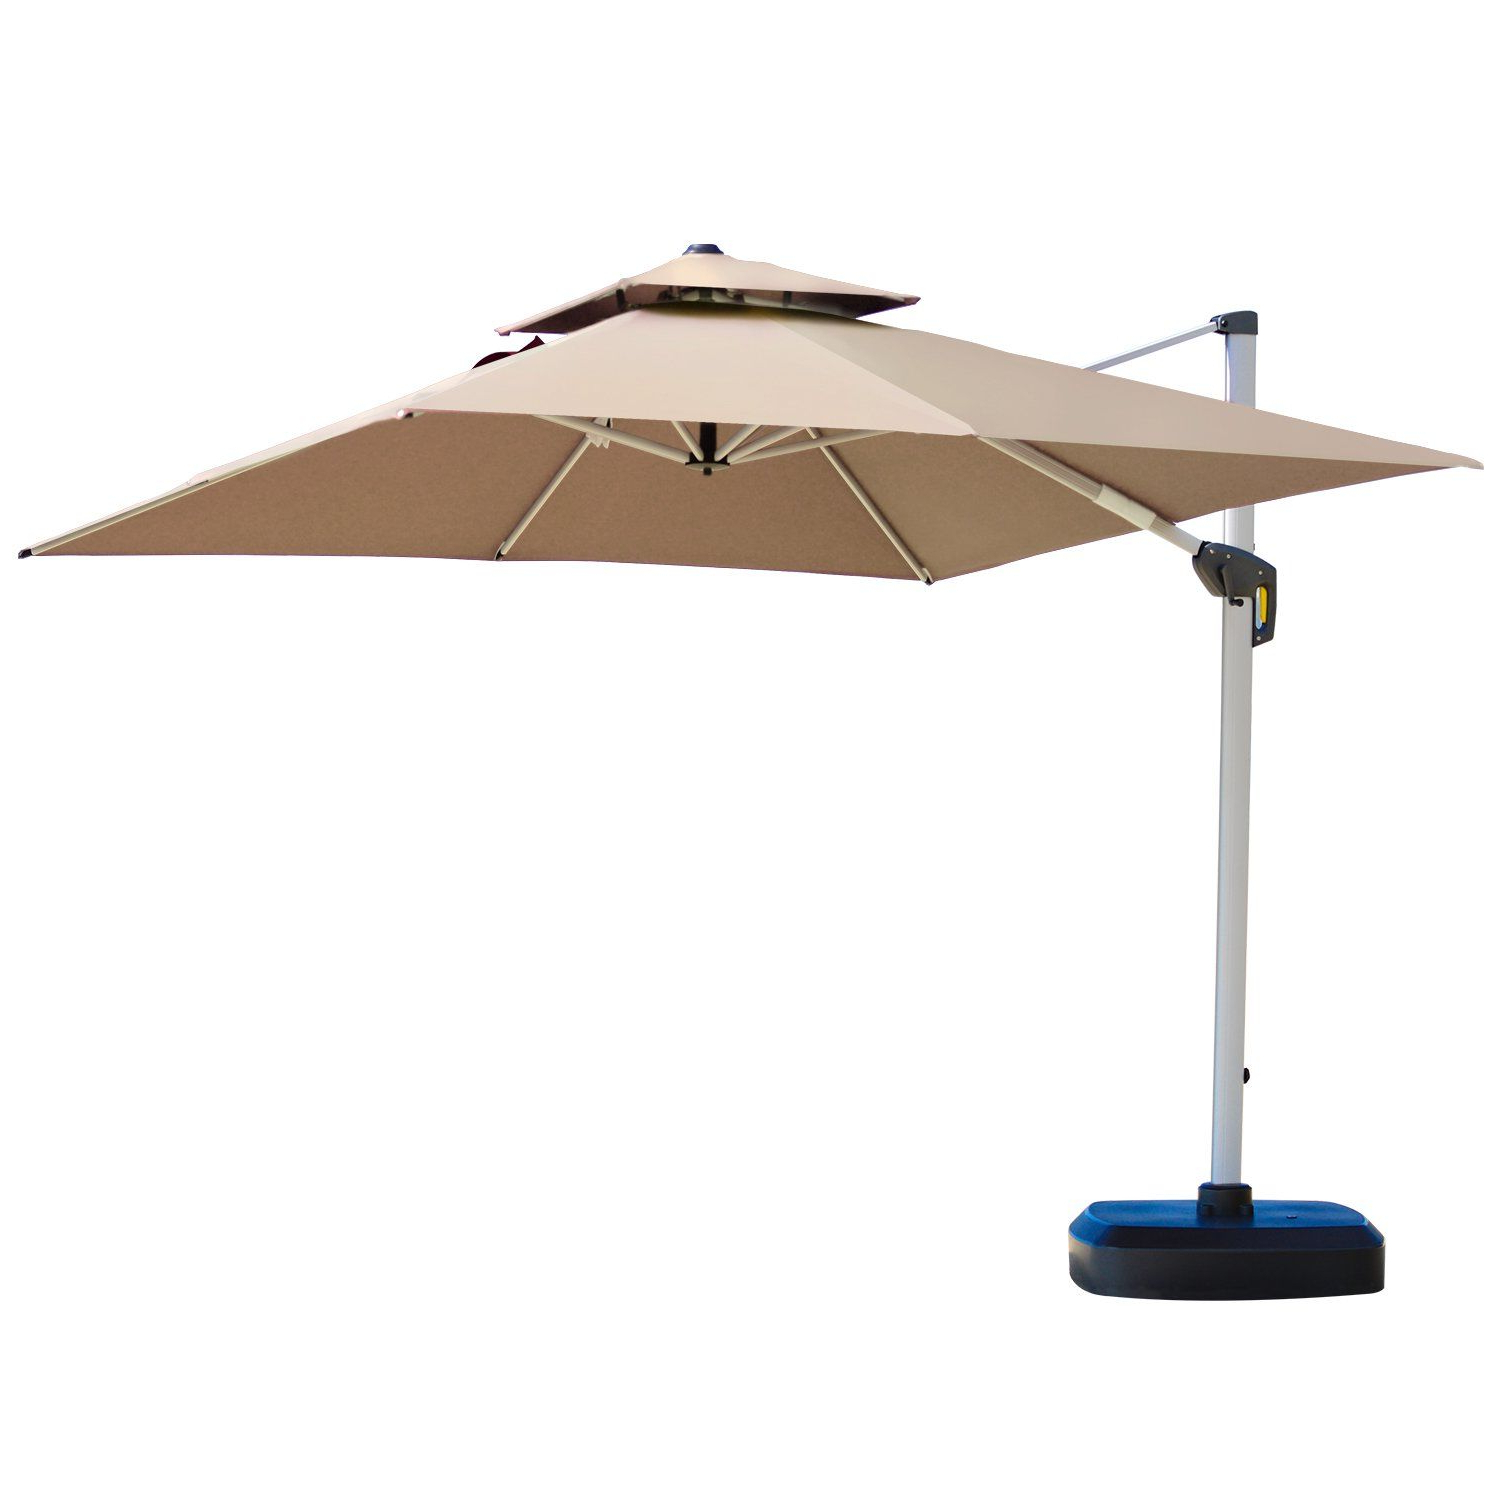 Most Recent Lytham Cantilever Umbrellas For Purple Leaf 10 Feet Double Top Deluxe Square Patio Umbrella Offset (Gallery 5 of 20)